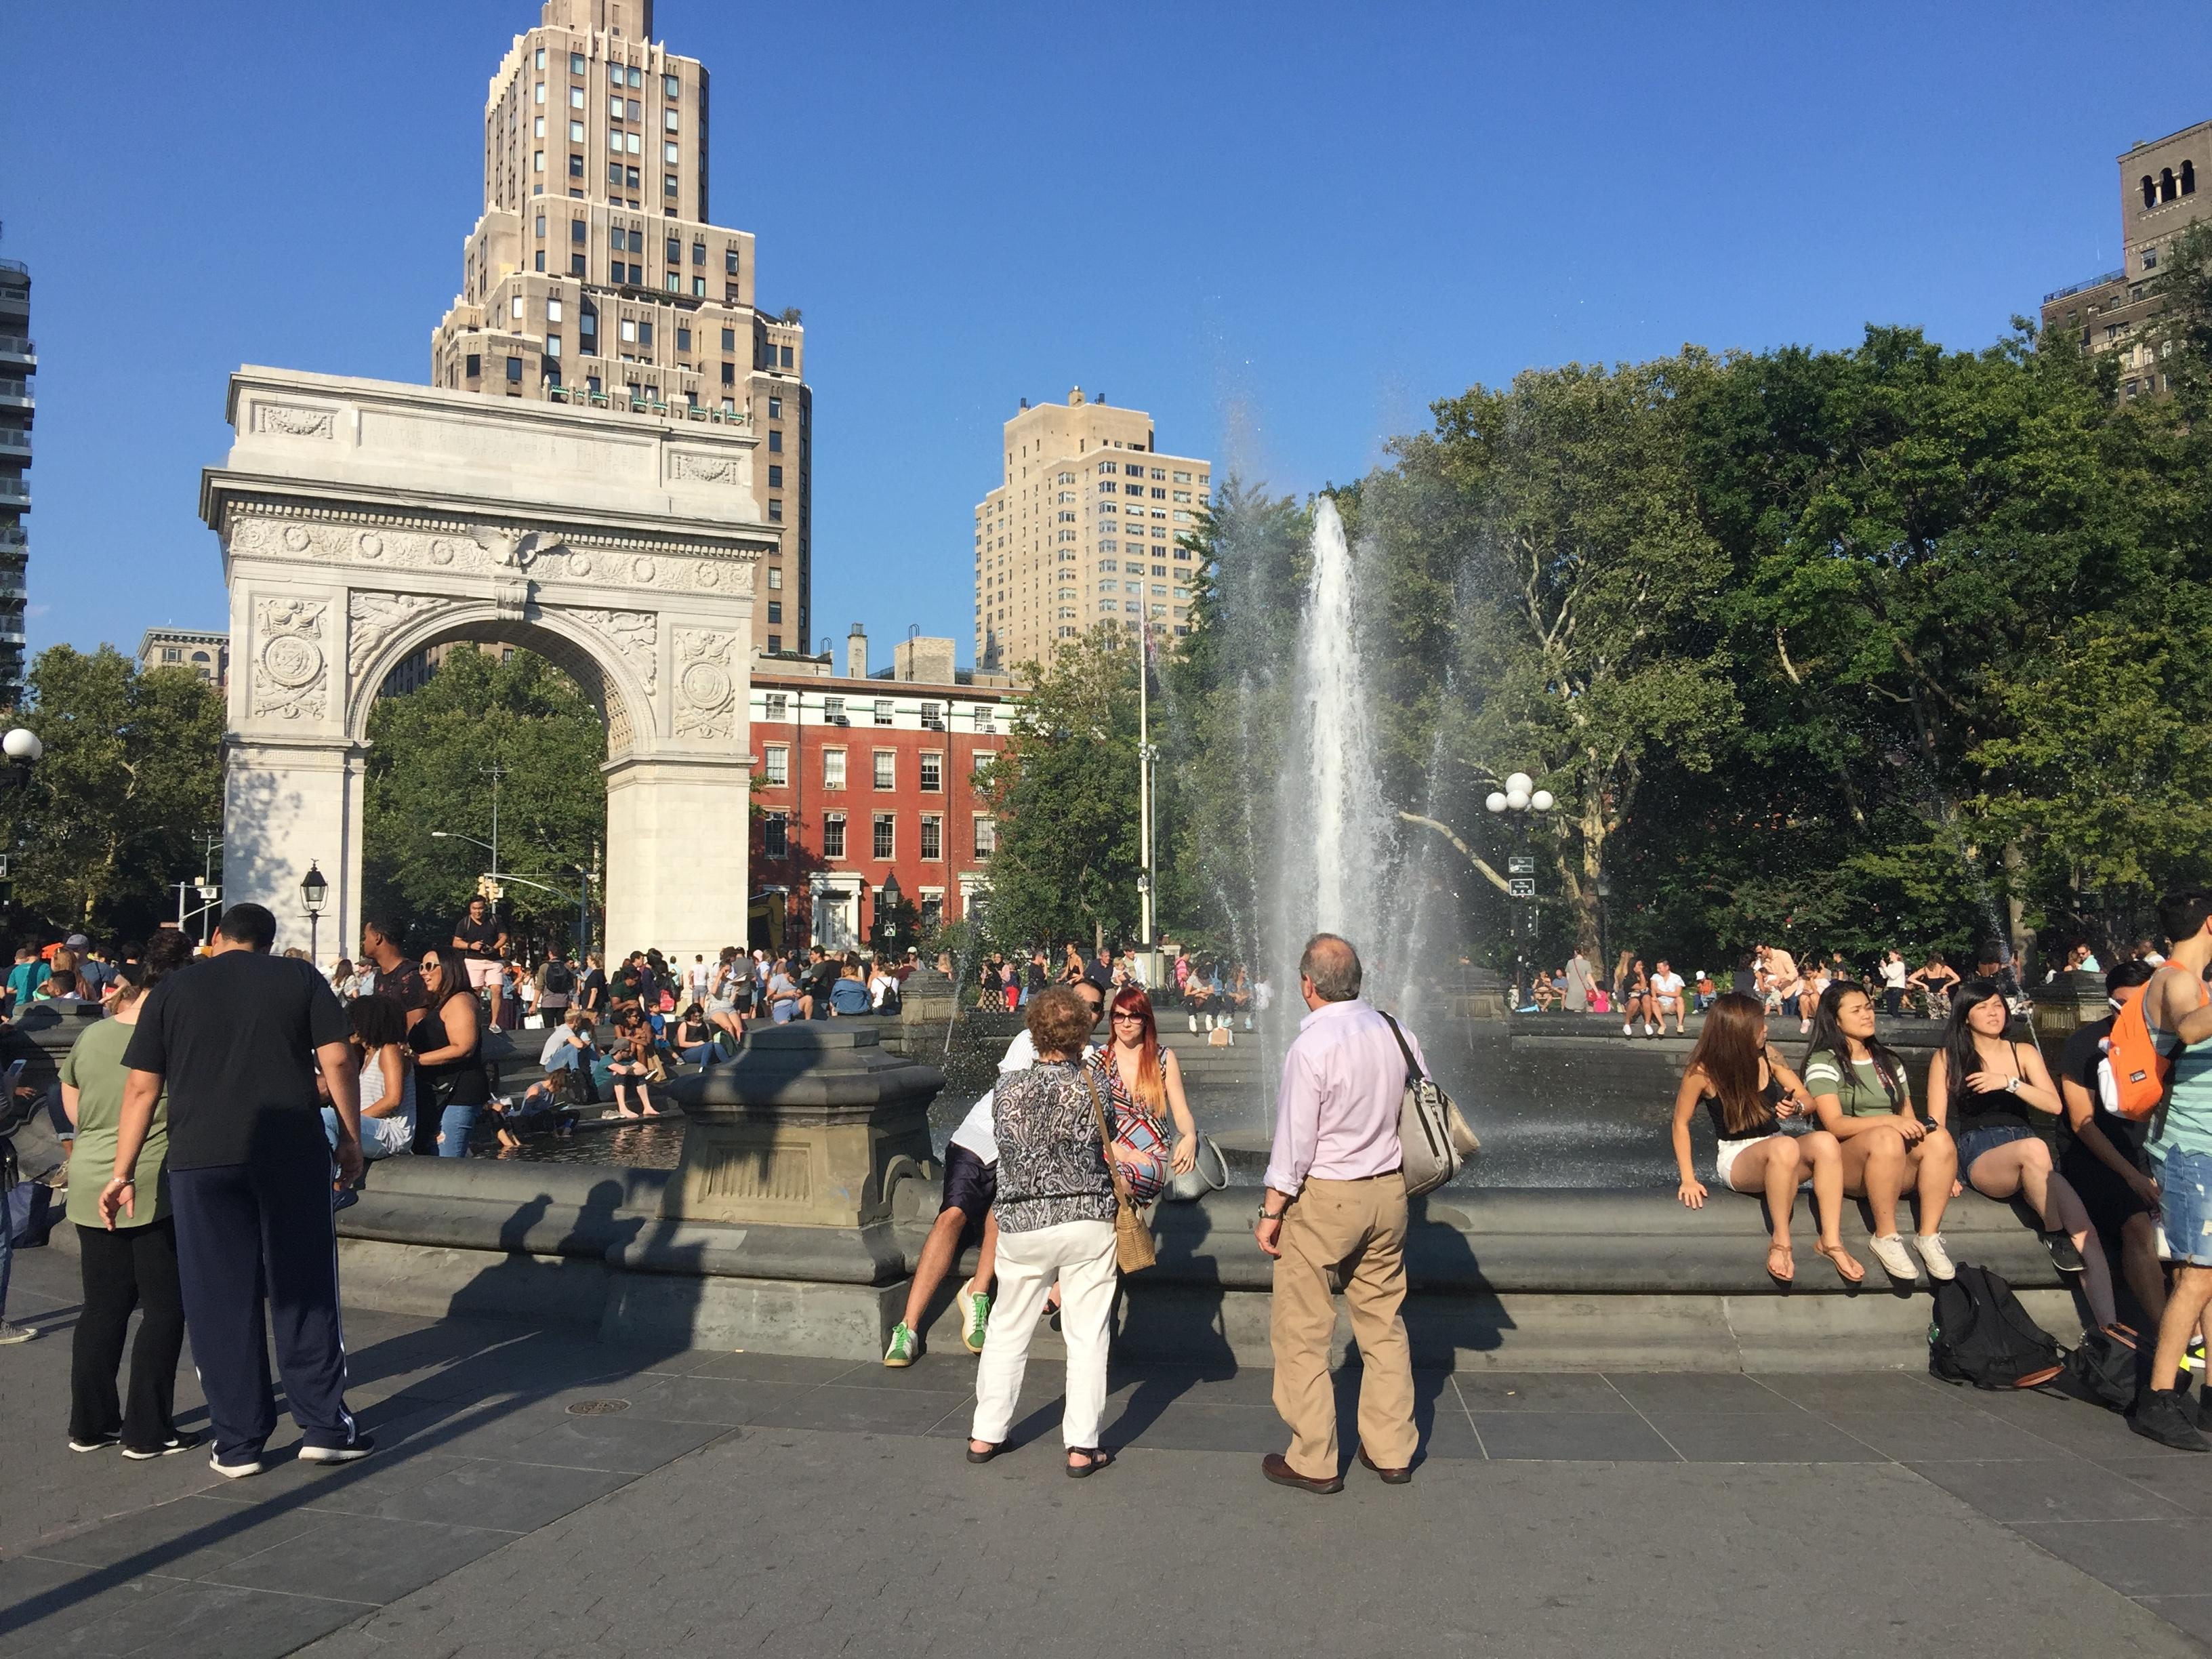 Washington Square Park Arch and Fountain